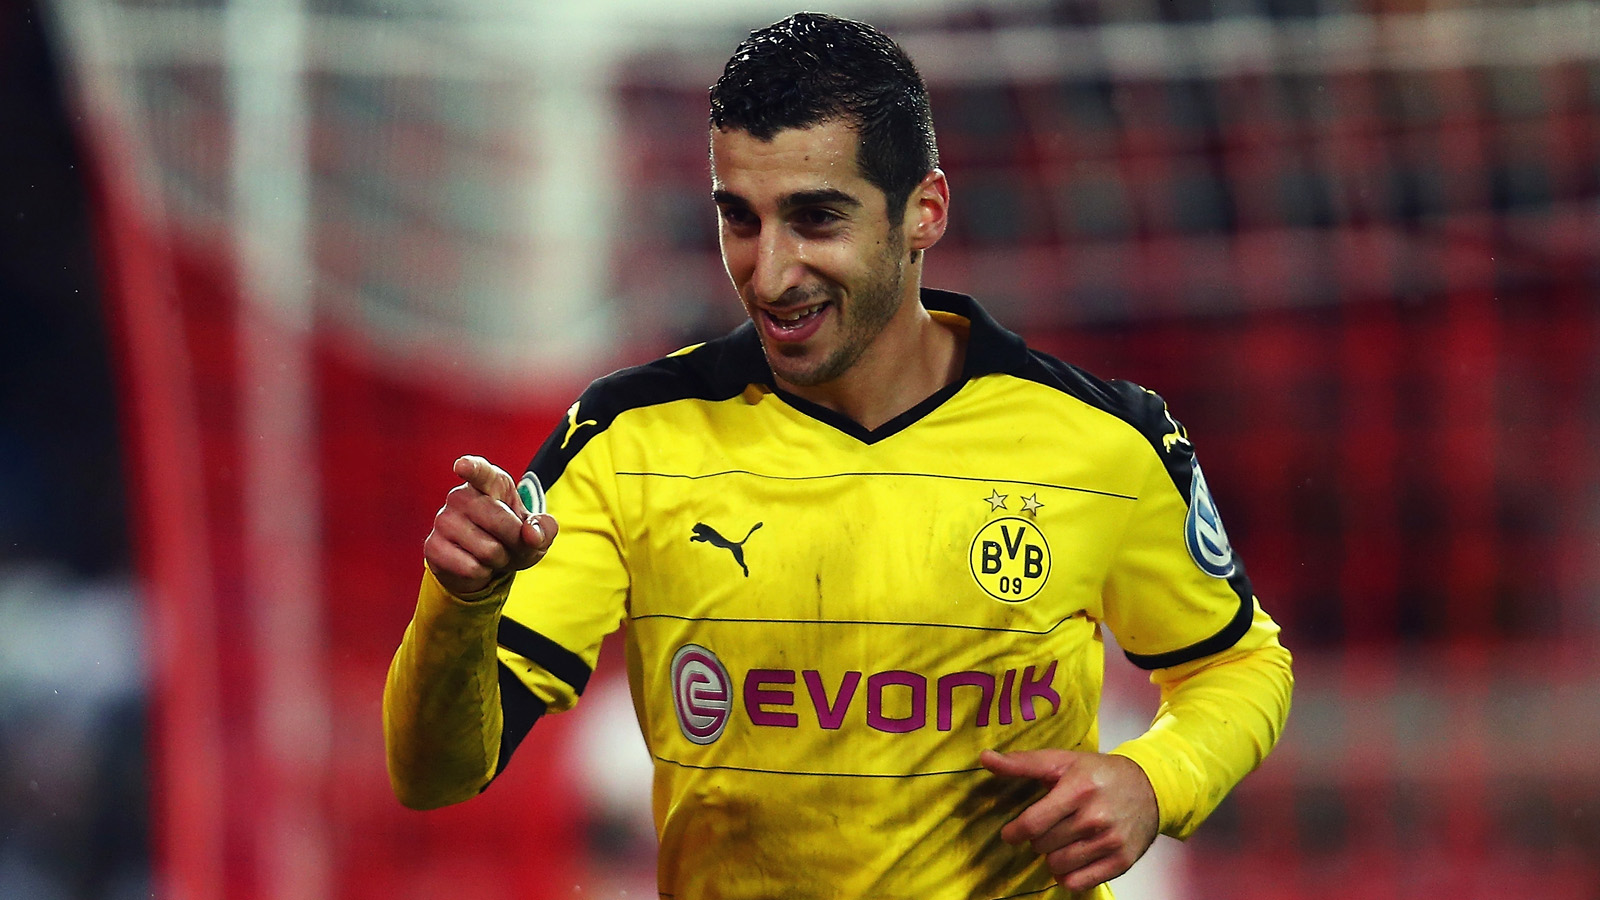 Dortmund star Henrikh Mkhitaryan set for Arsenal switch